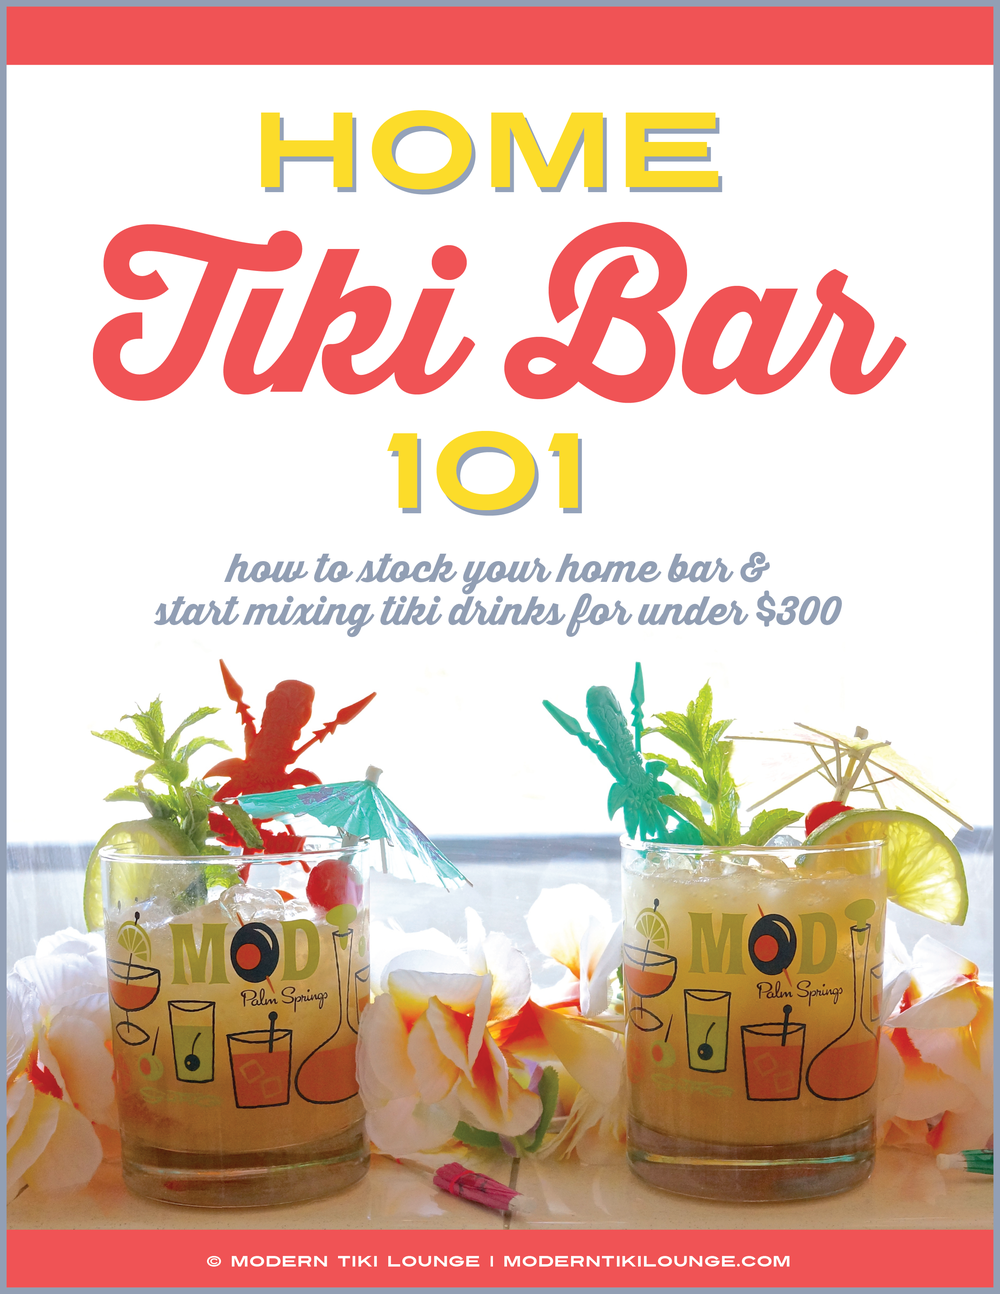 home-tiki-bar-101.jpg